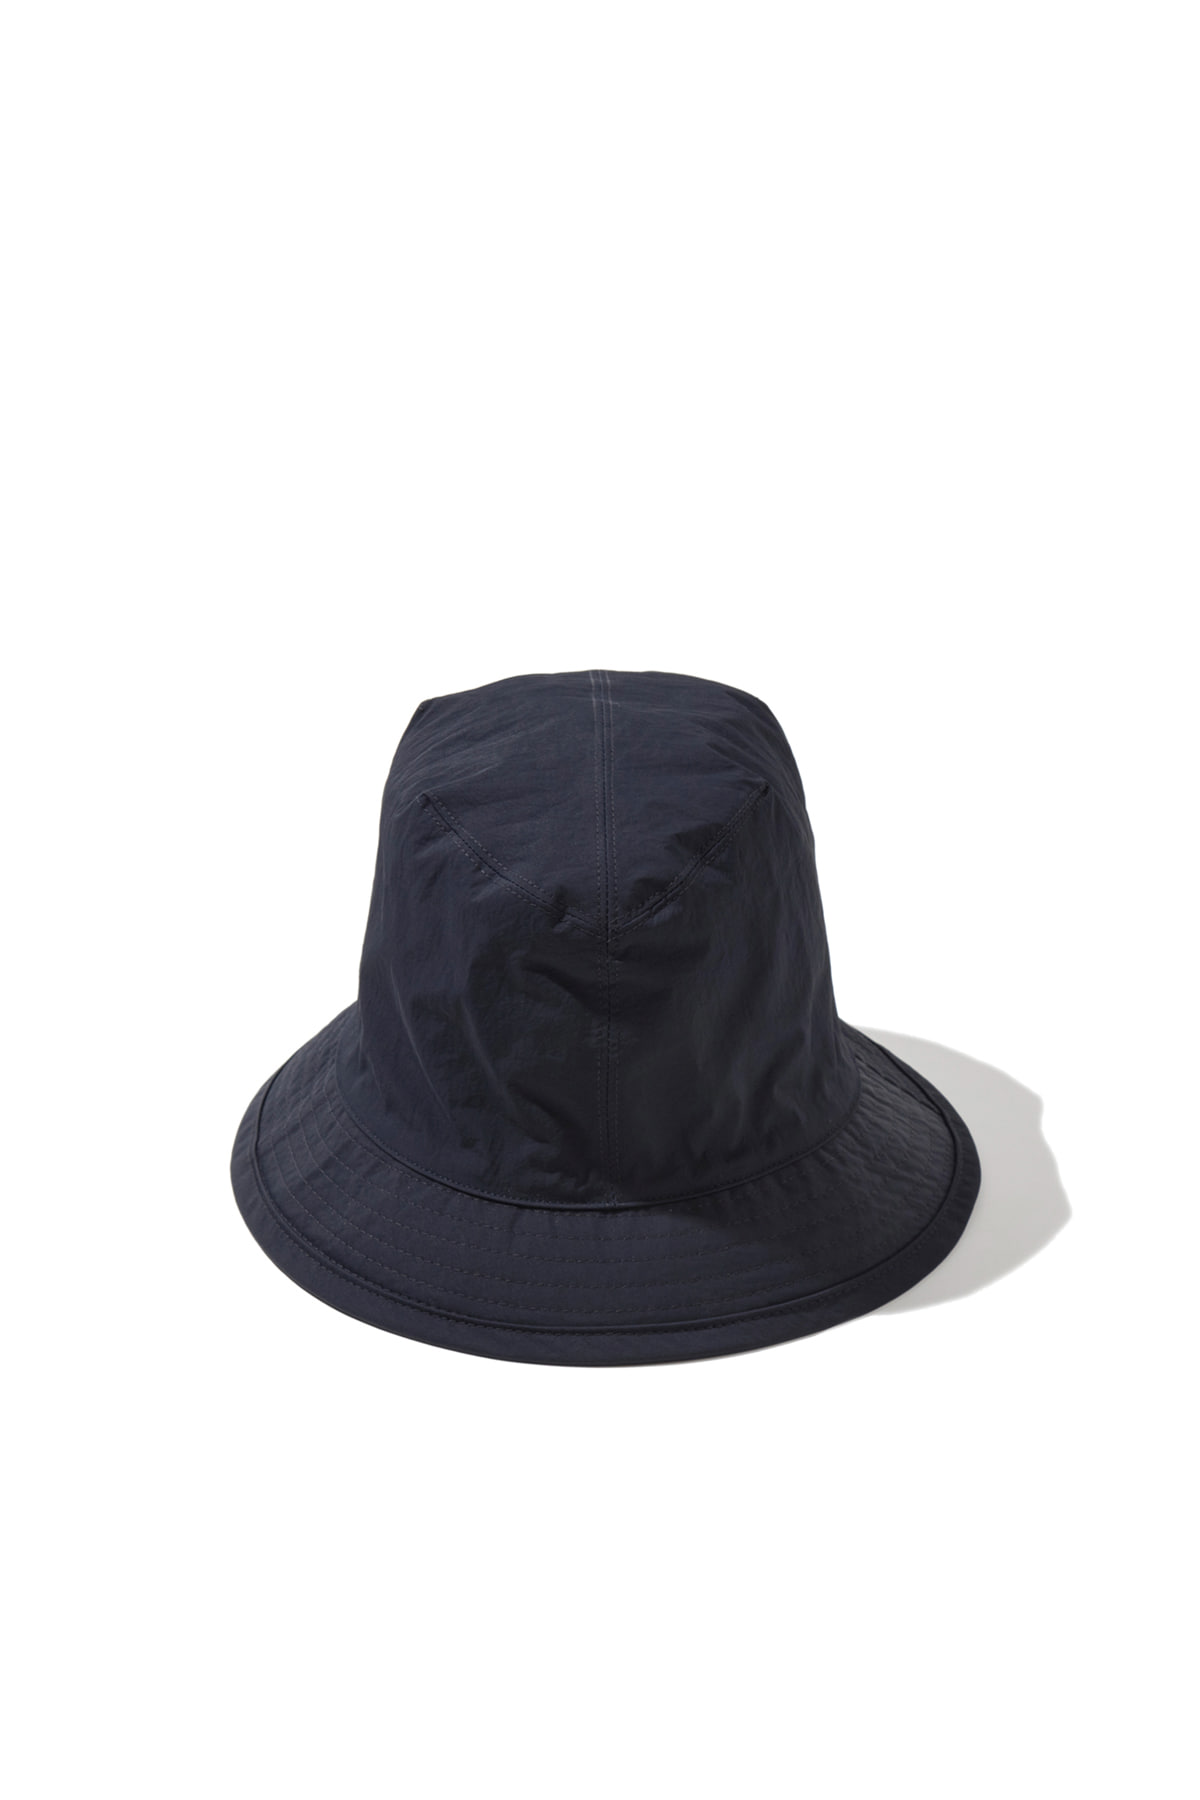 Blankof : HLG 01 H3 Hunter Hat (Navy)